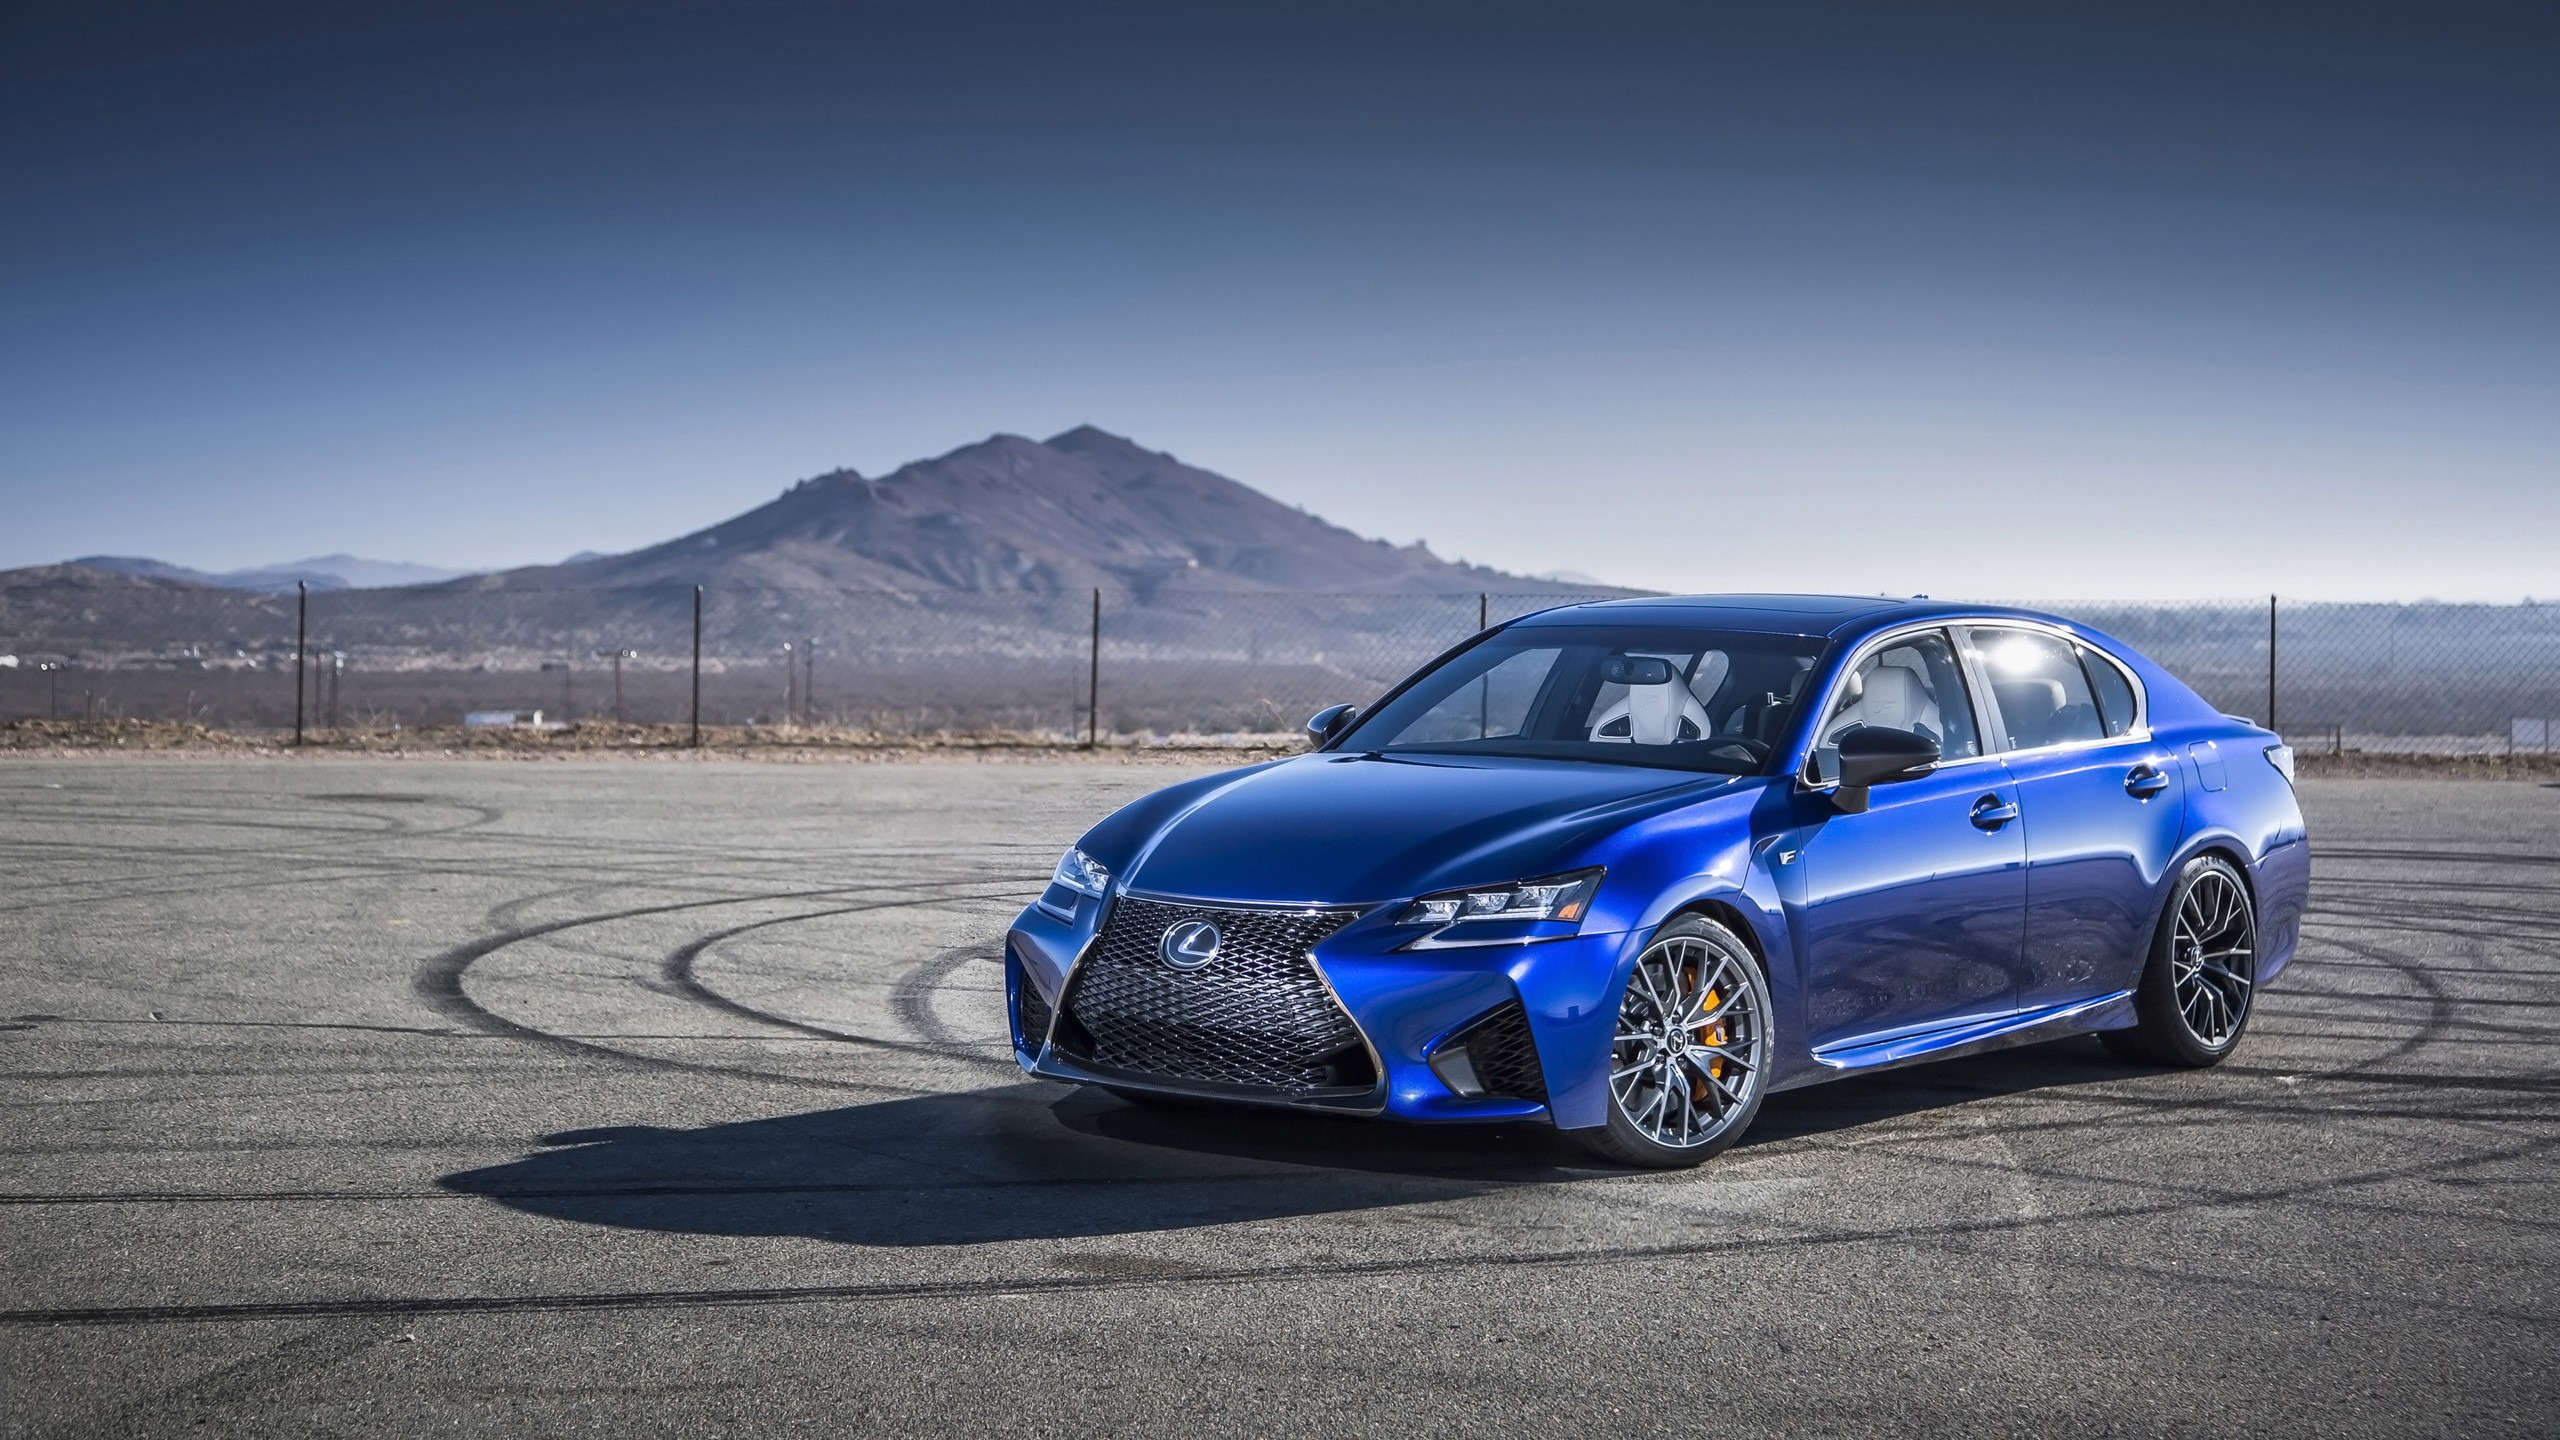 2016 Lexus GS F Wallpaper | HD Car Wallpapers | ID #5067